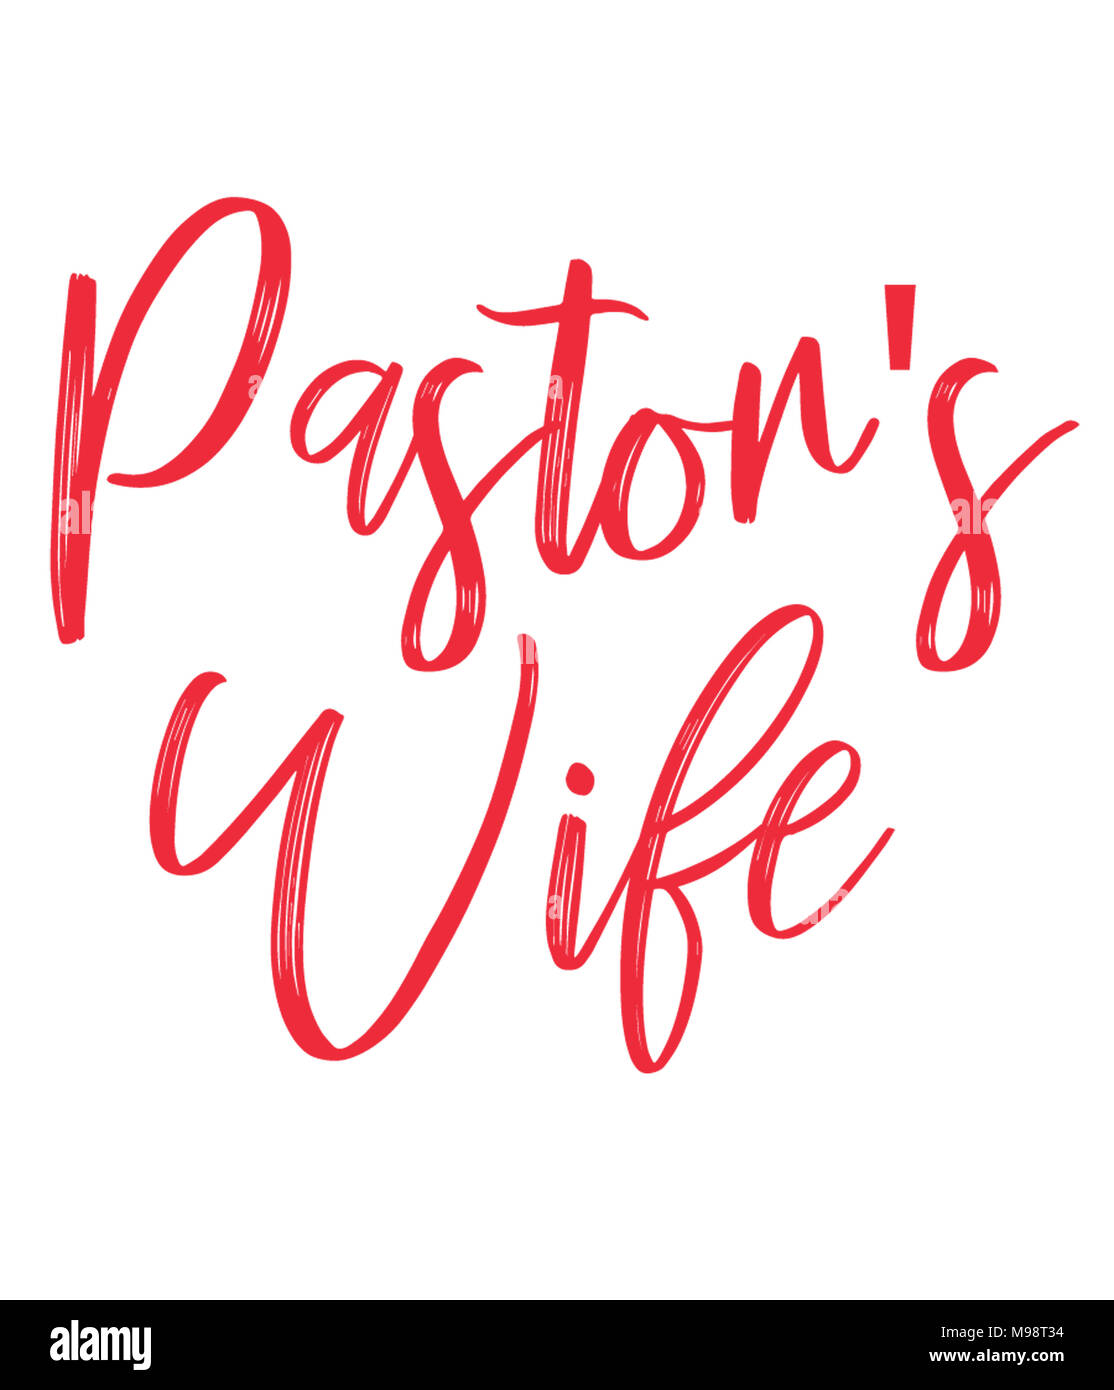 Pastor's Wife print design and lettering in red font. Decoration and Celebration. - Stock Image